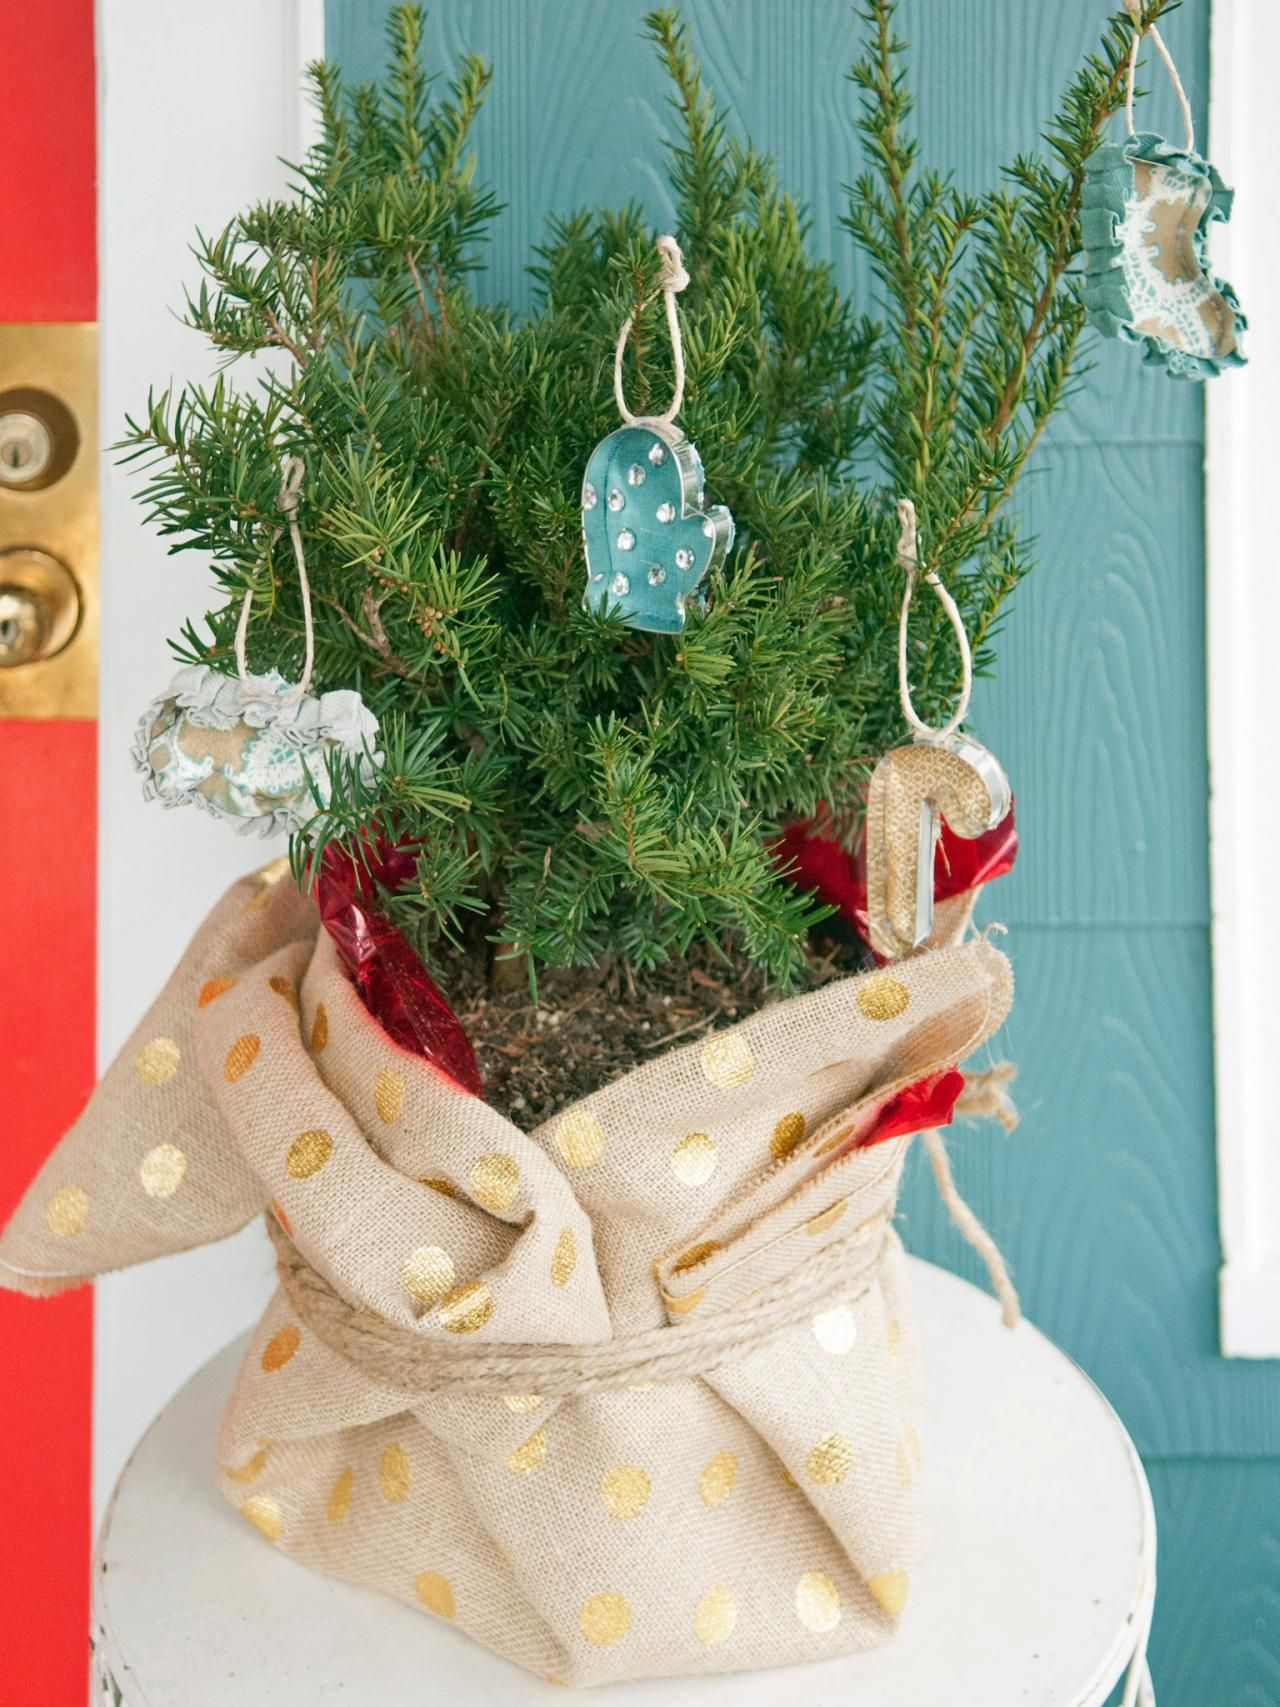 Make+these+easy+Christmas+ornaments+made+with+cookie+cutters.+They+don't+require+any+sewing!